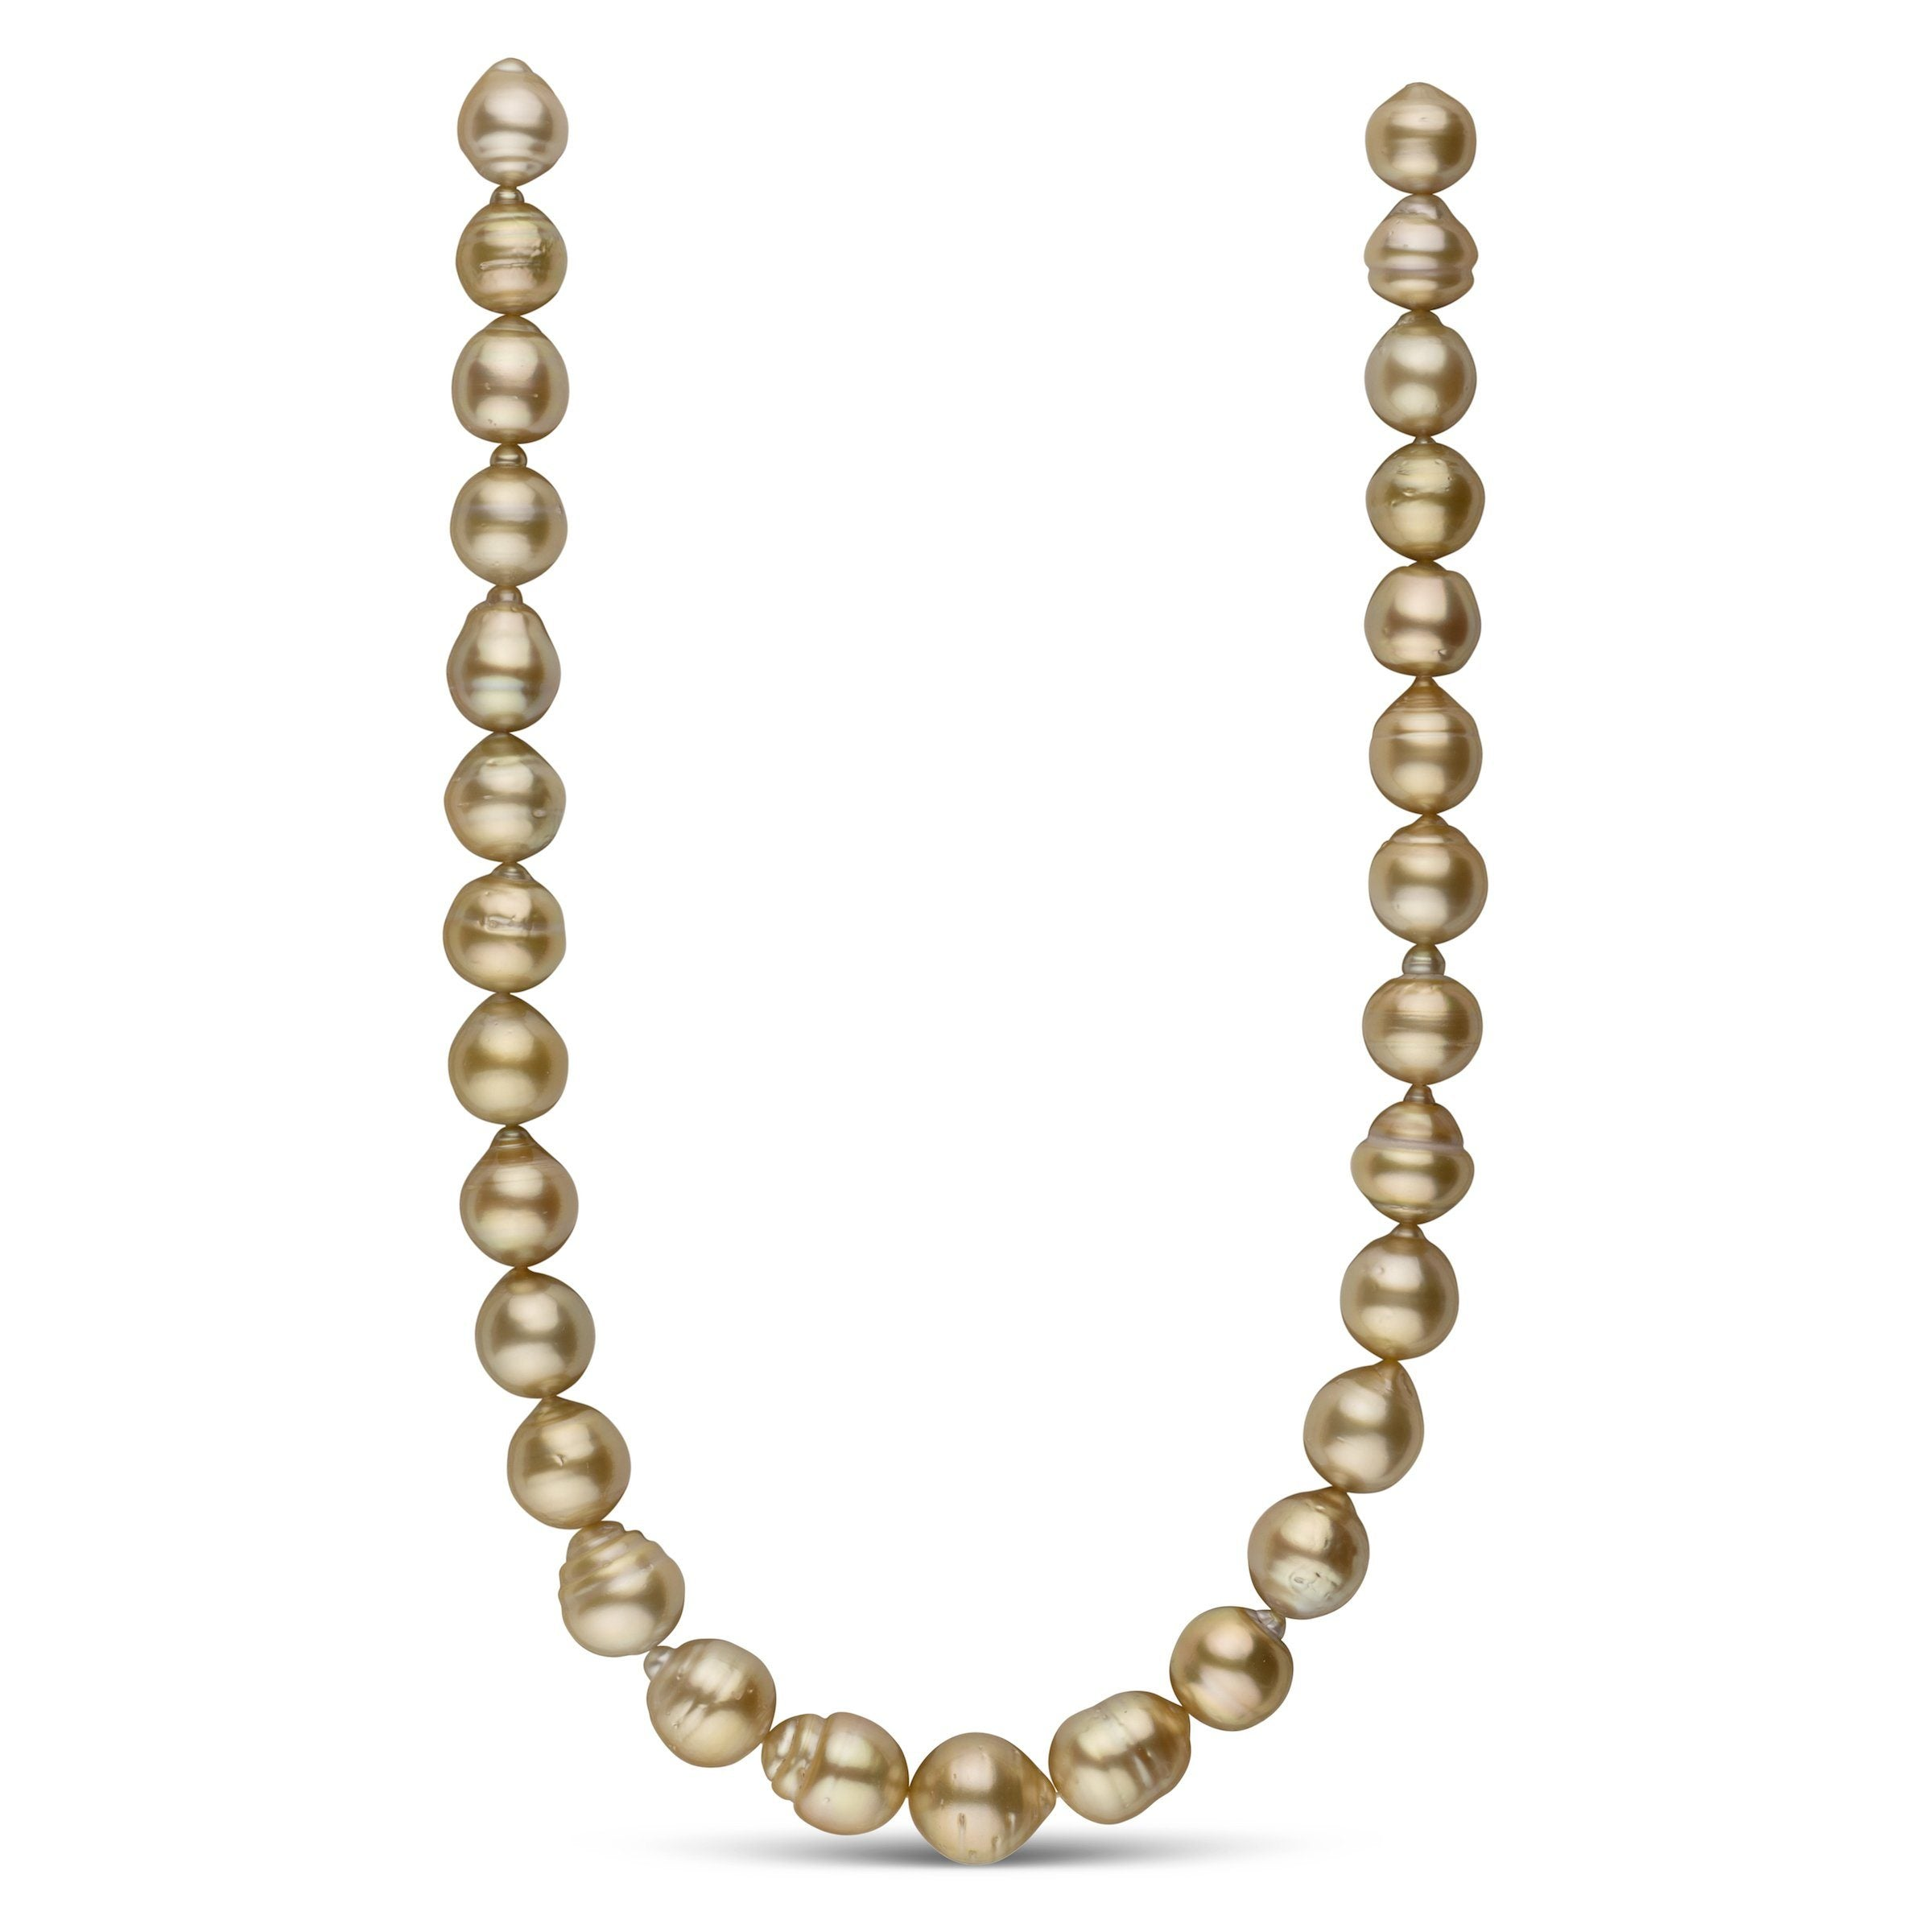 12.0-14.4 mm AA+ Golden South Sea Baroque Necklace